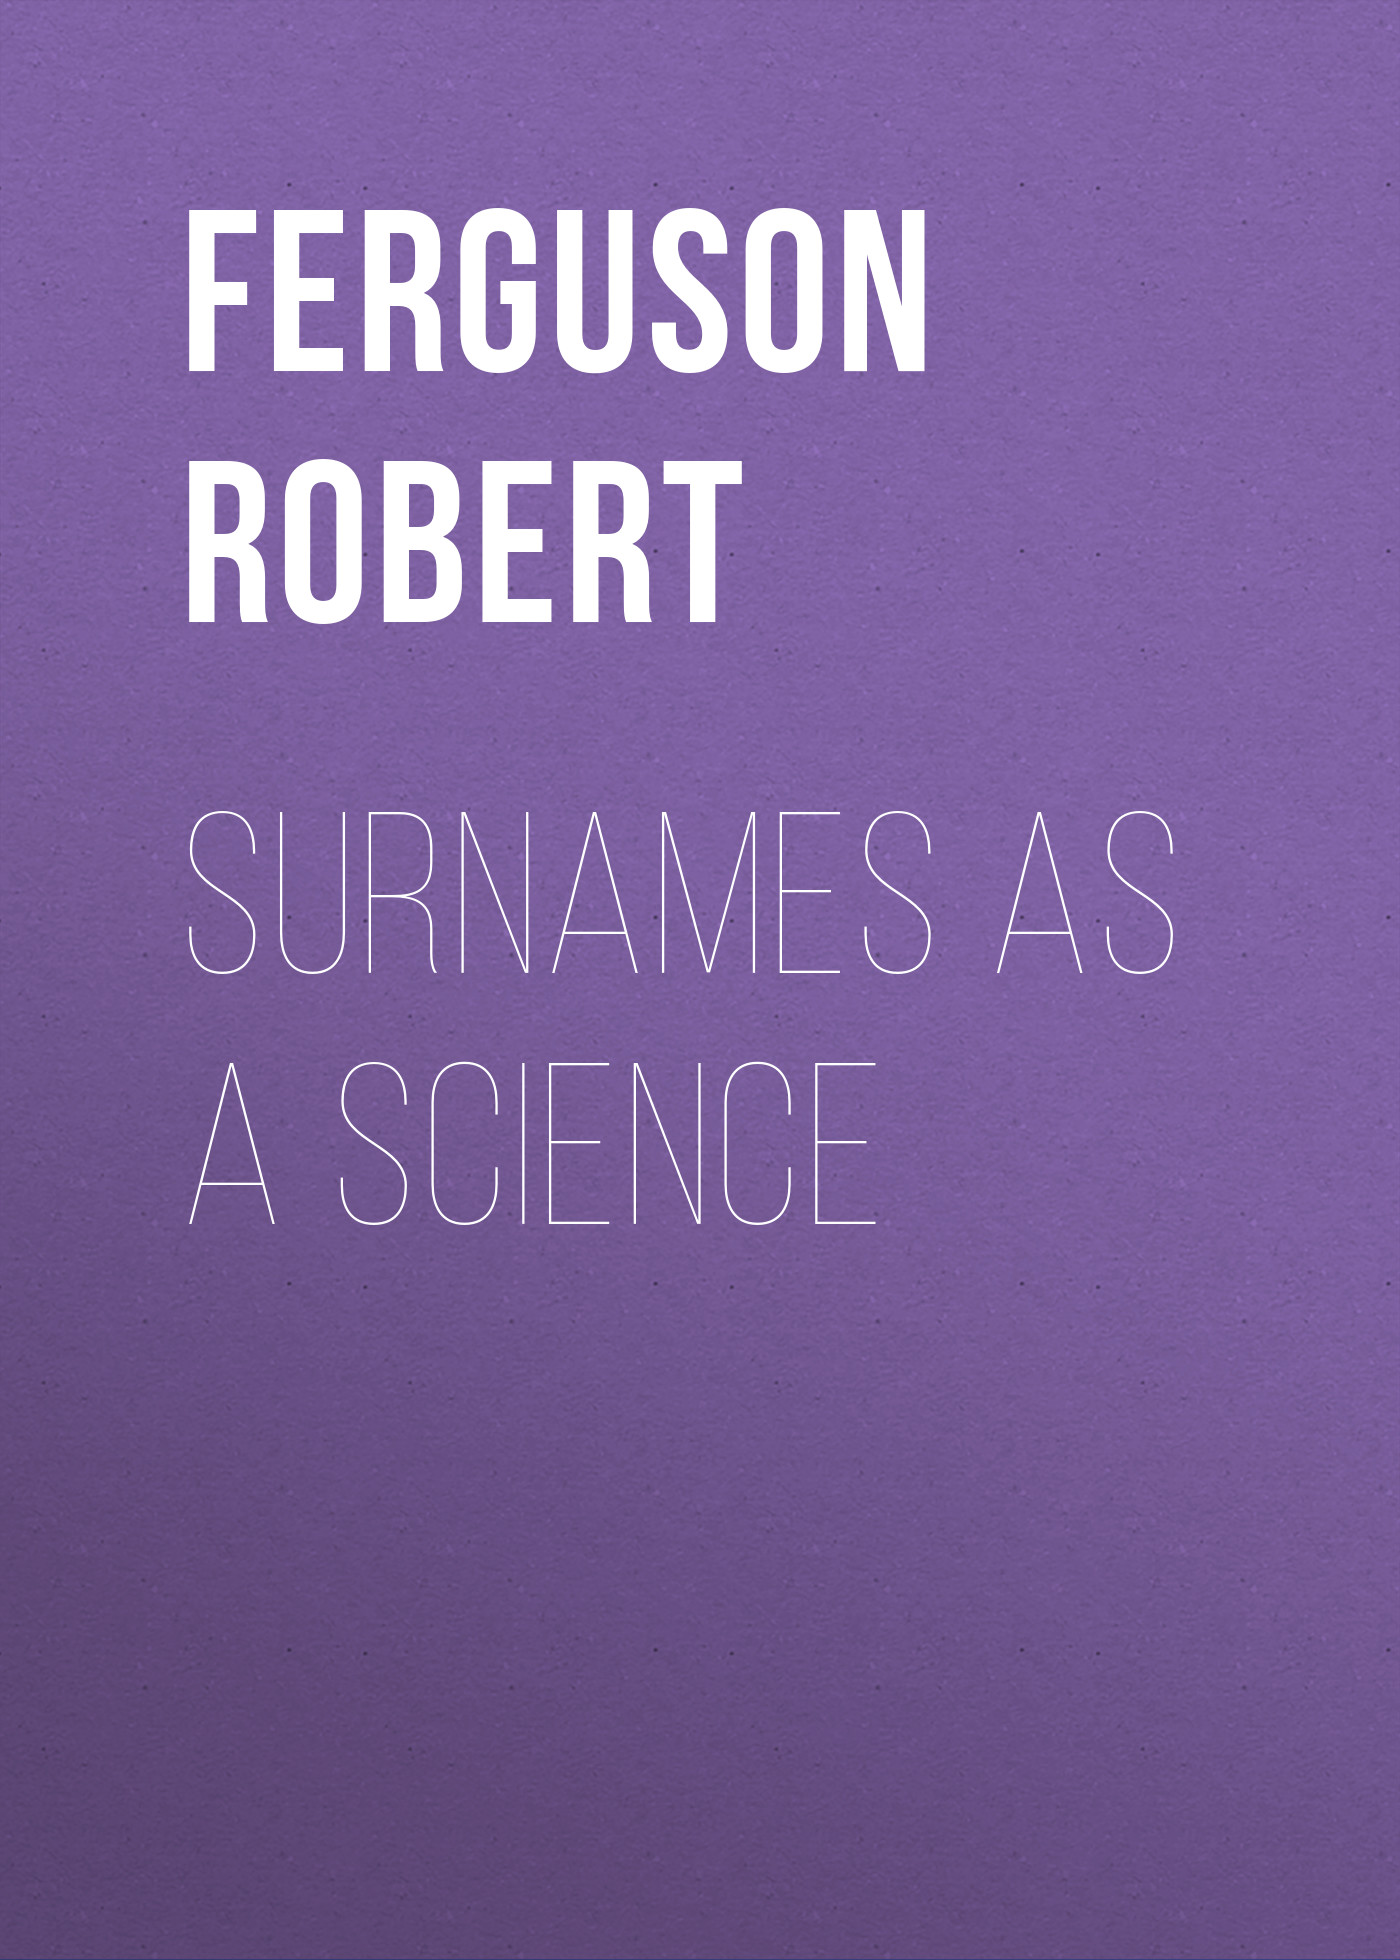 Ferguson Robert Surnames as a Science wixom robert l chromatography a science of discovery